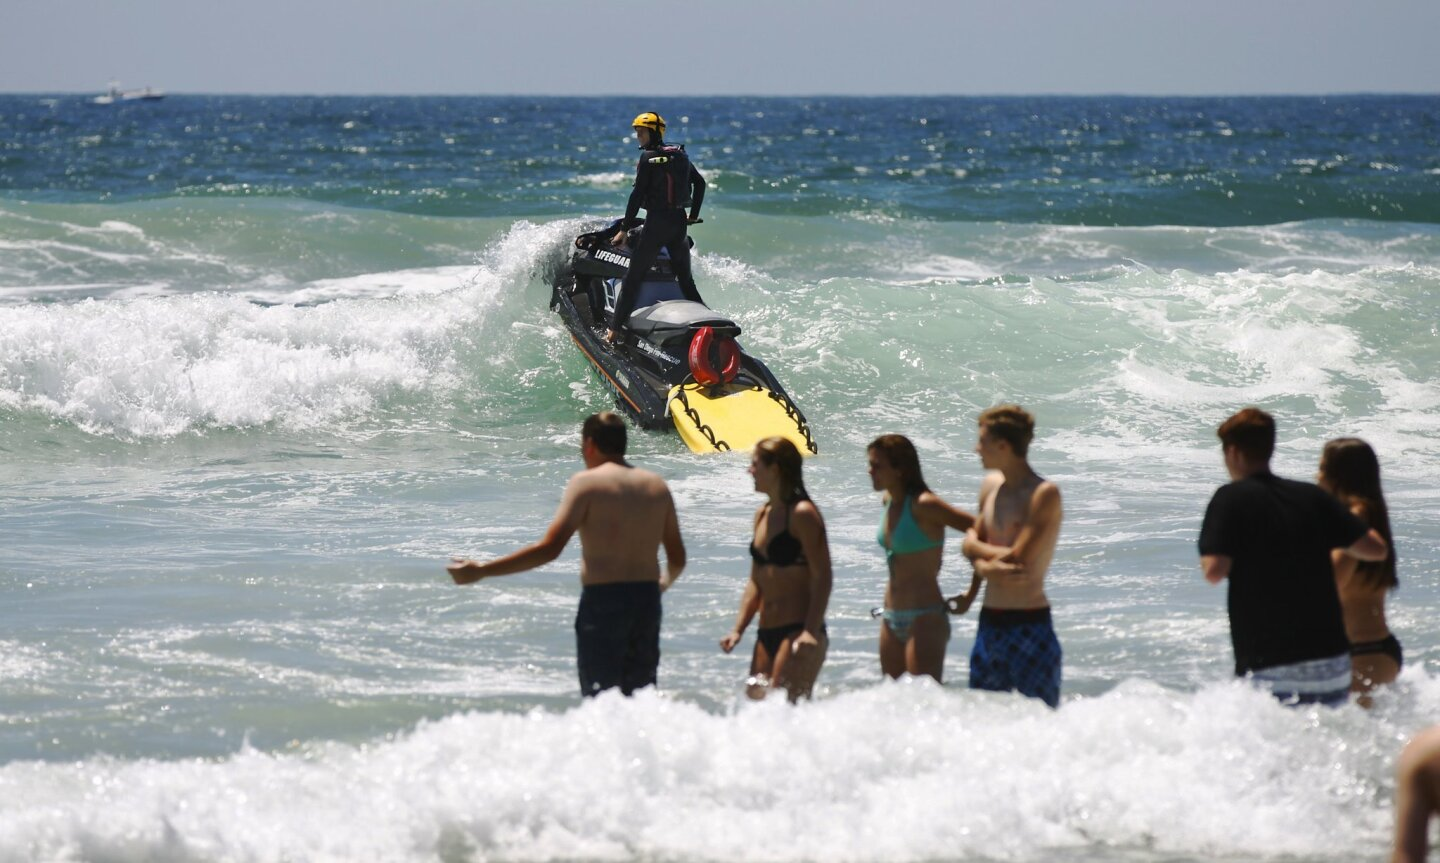 A San Diego Lifeguard patrols Mission Beach on a personal water craft. Strong rip currents, large surf and crowds flocking to the beach from record heat will make for a busy weekend at local beaches.